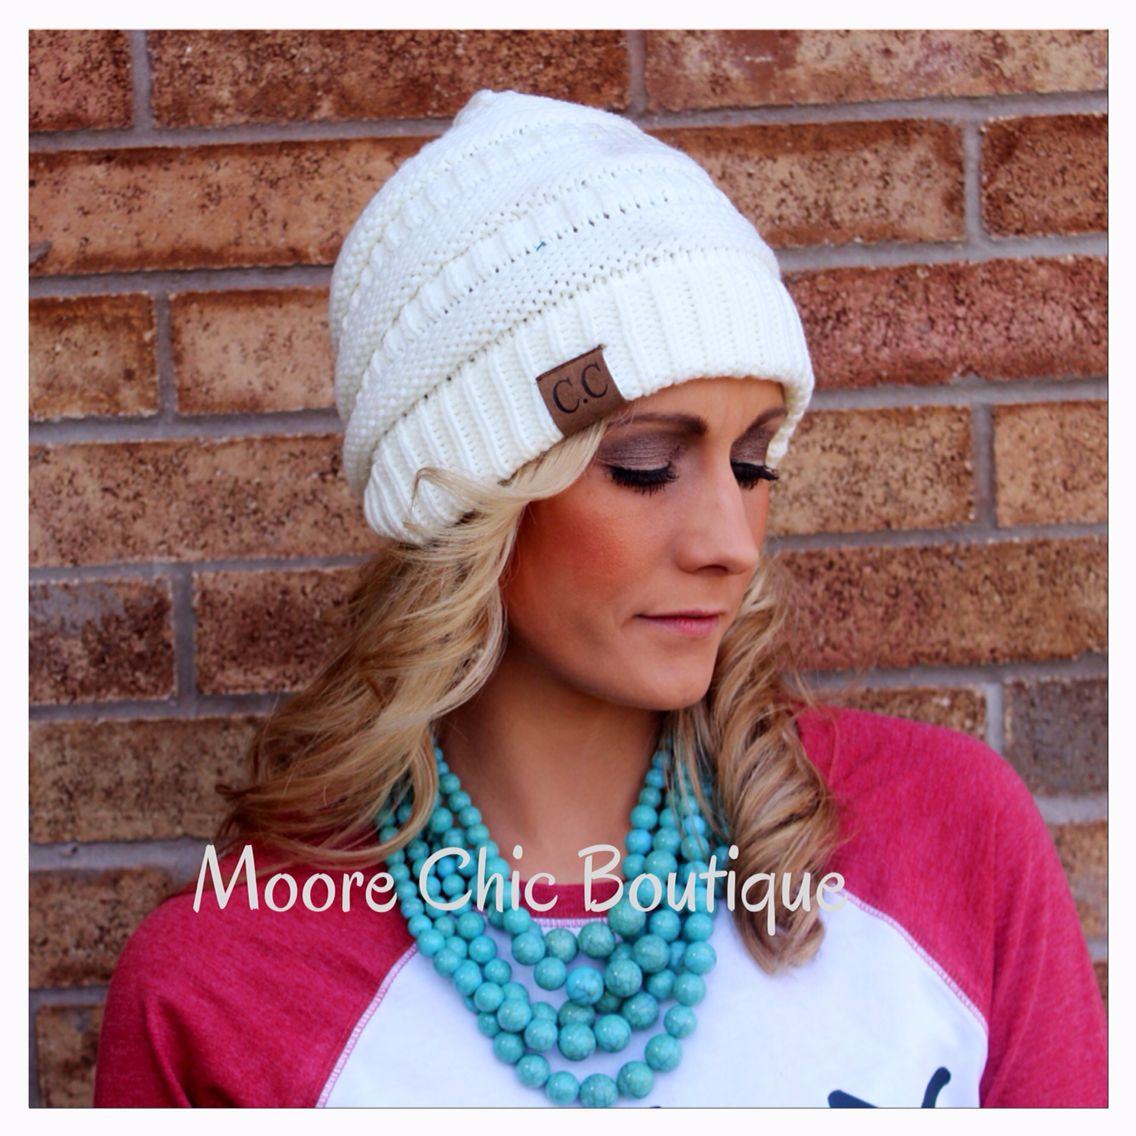 Find us on FaceBook @ Moore Chic Boutique